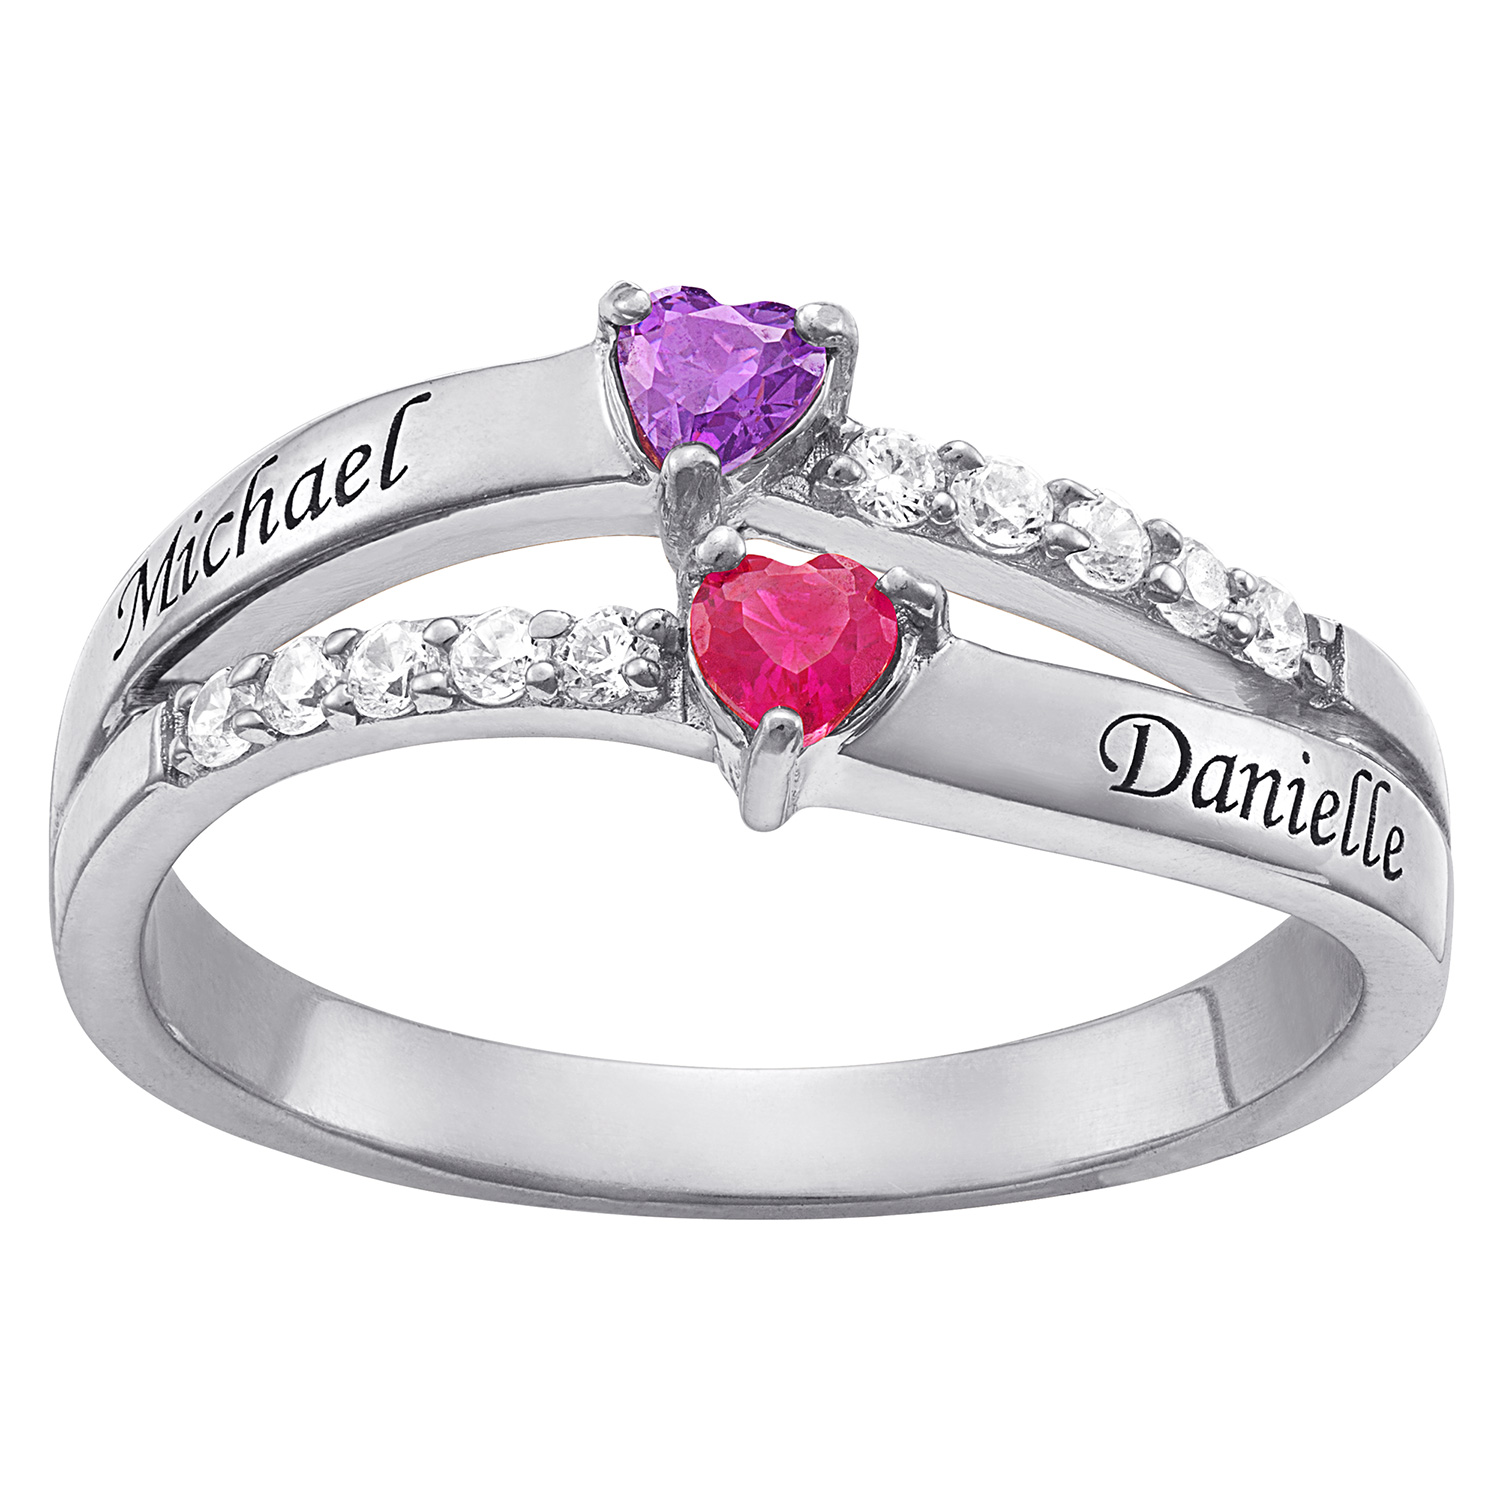 Personalized Couple's Sterling Silver or Gold over Silver Engraved Heart Birthstone and CZ Ring